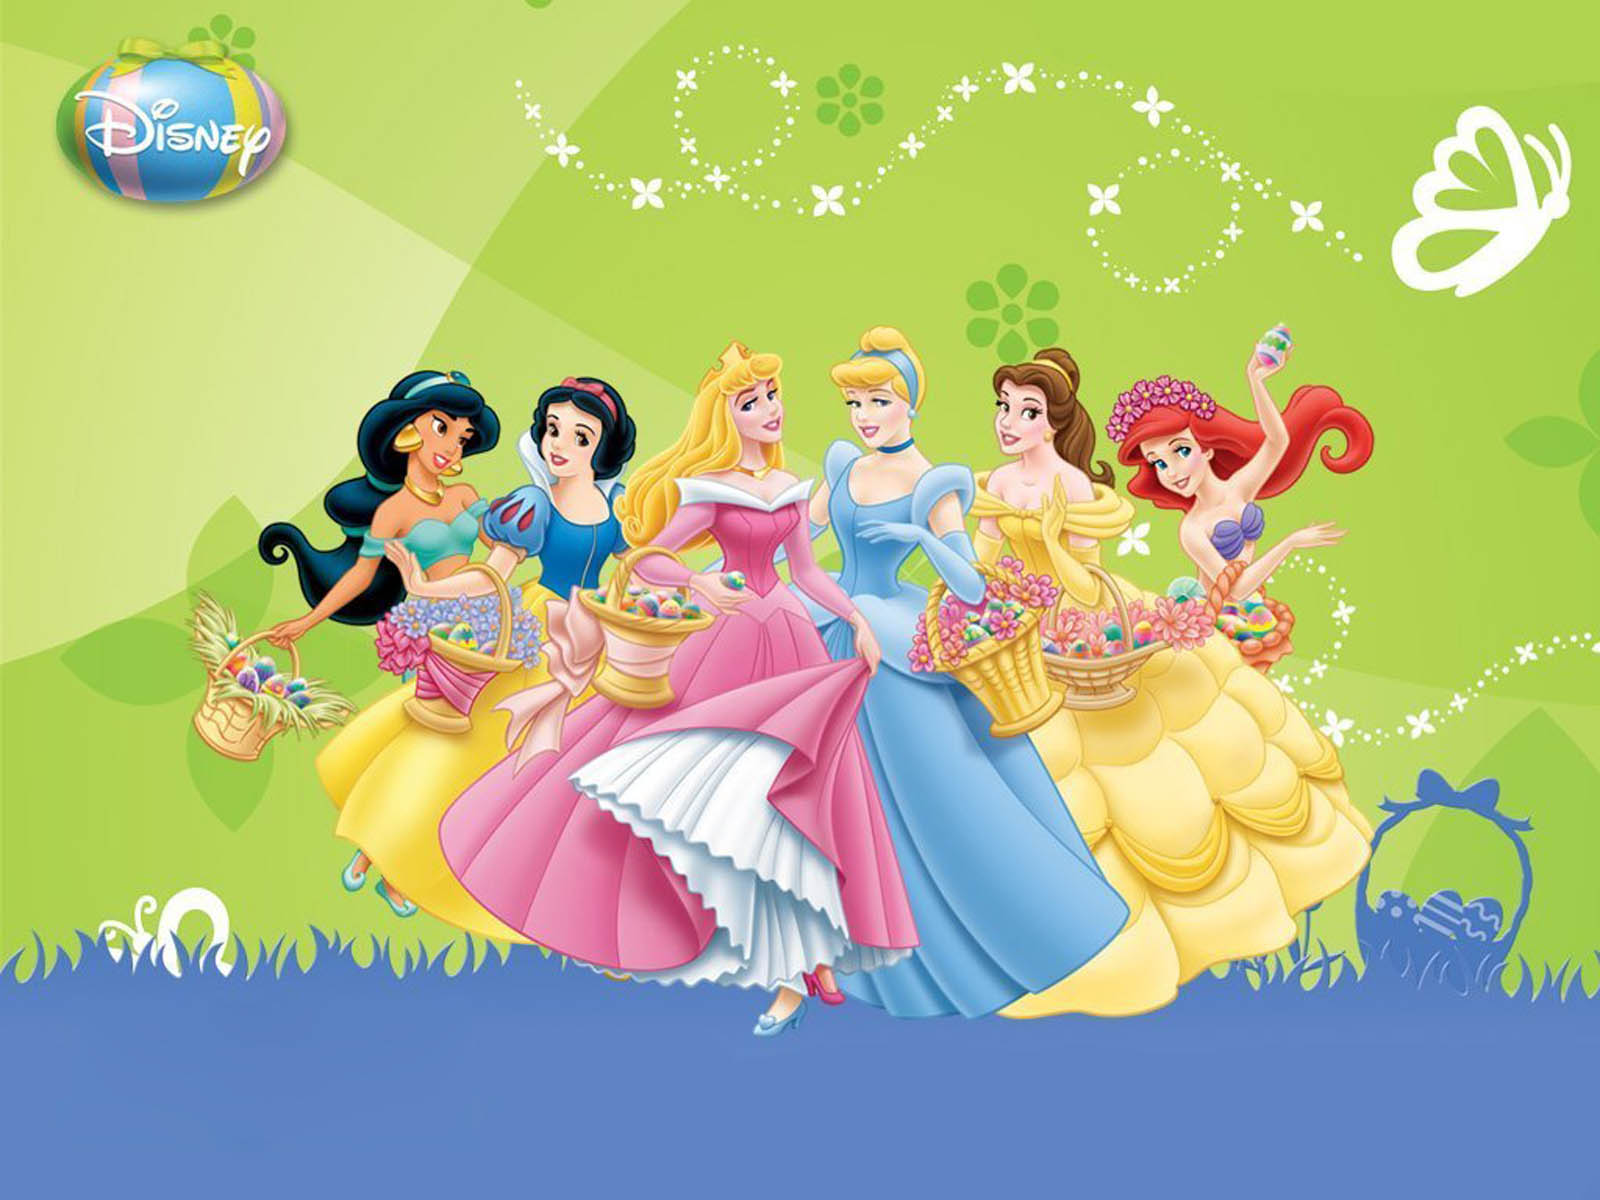 wallpapers Disney Princess Wallpapers 1600x1200